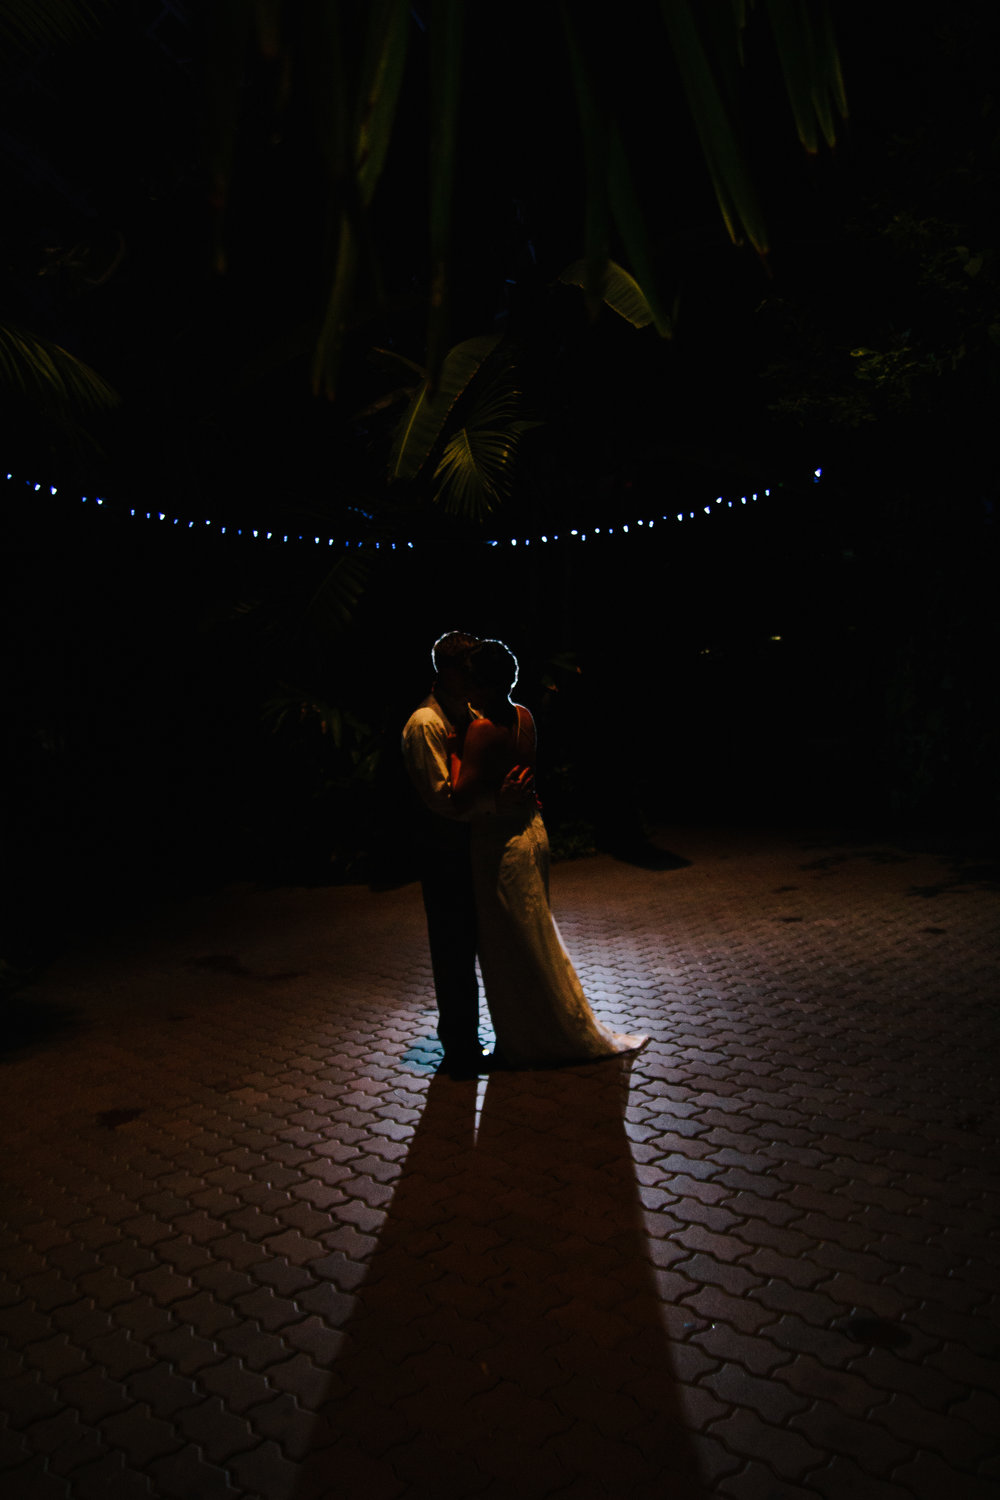 Gorgeous Nighttime Wedding Bride + Groom Photos - A Botanical Gardens Budget Wedding - From Britt's Eye View Photography